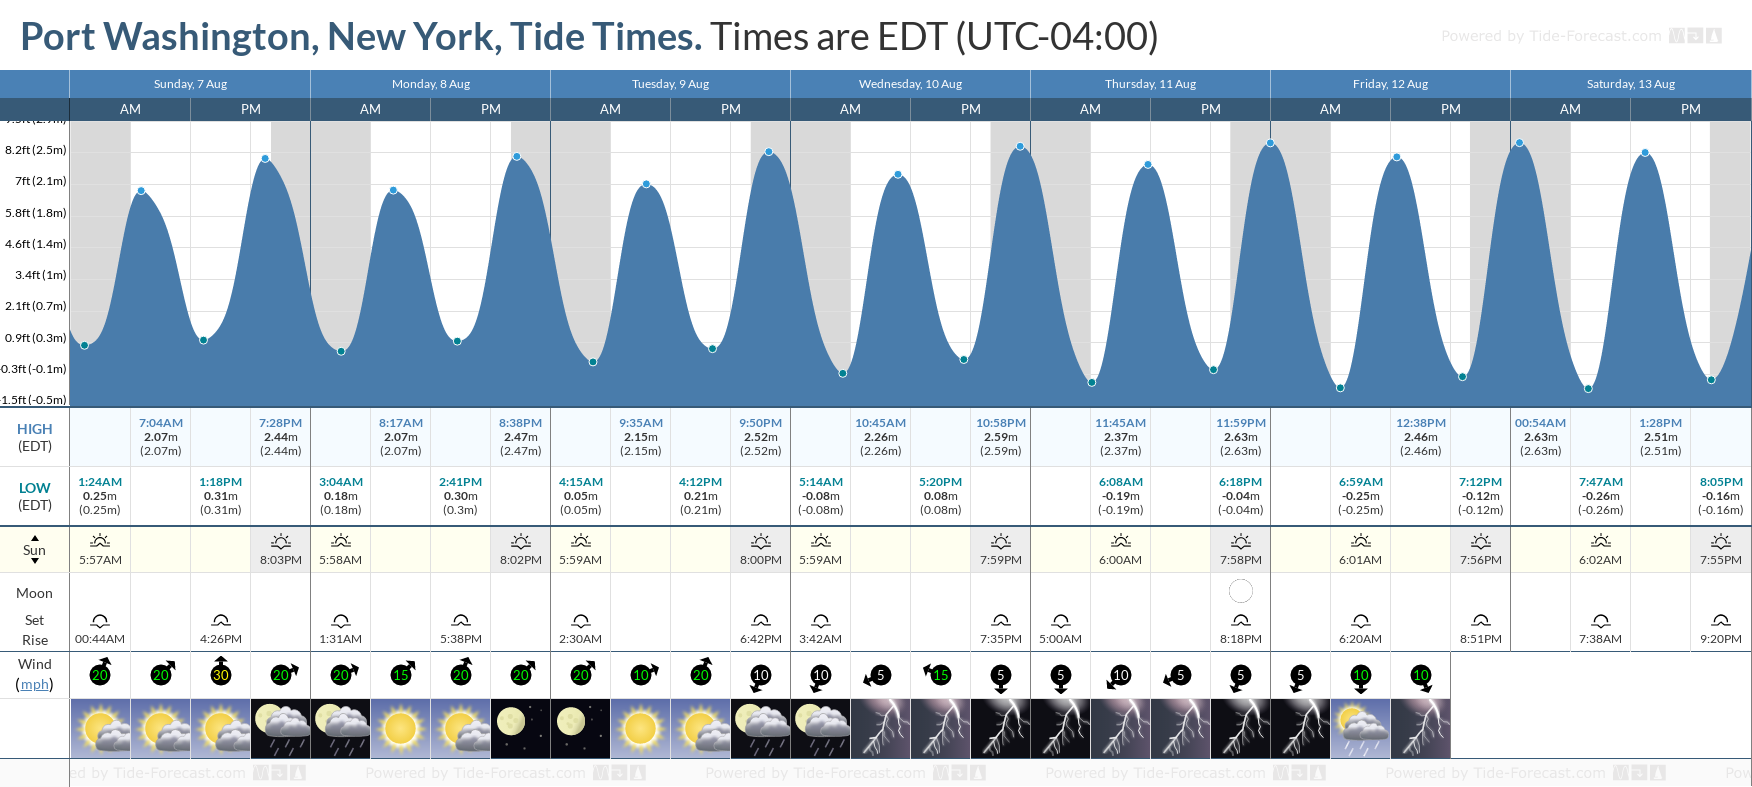 Port Washington, New York Tide Chart including high and low tide tide times for the next 7 days